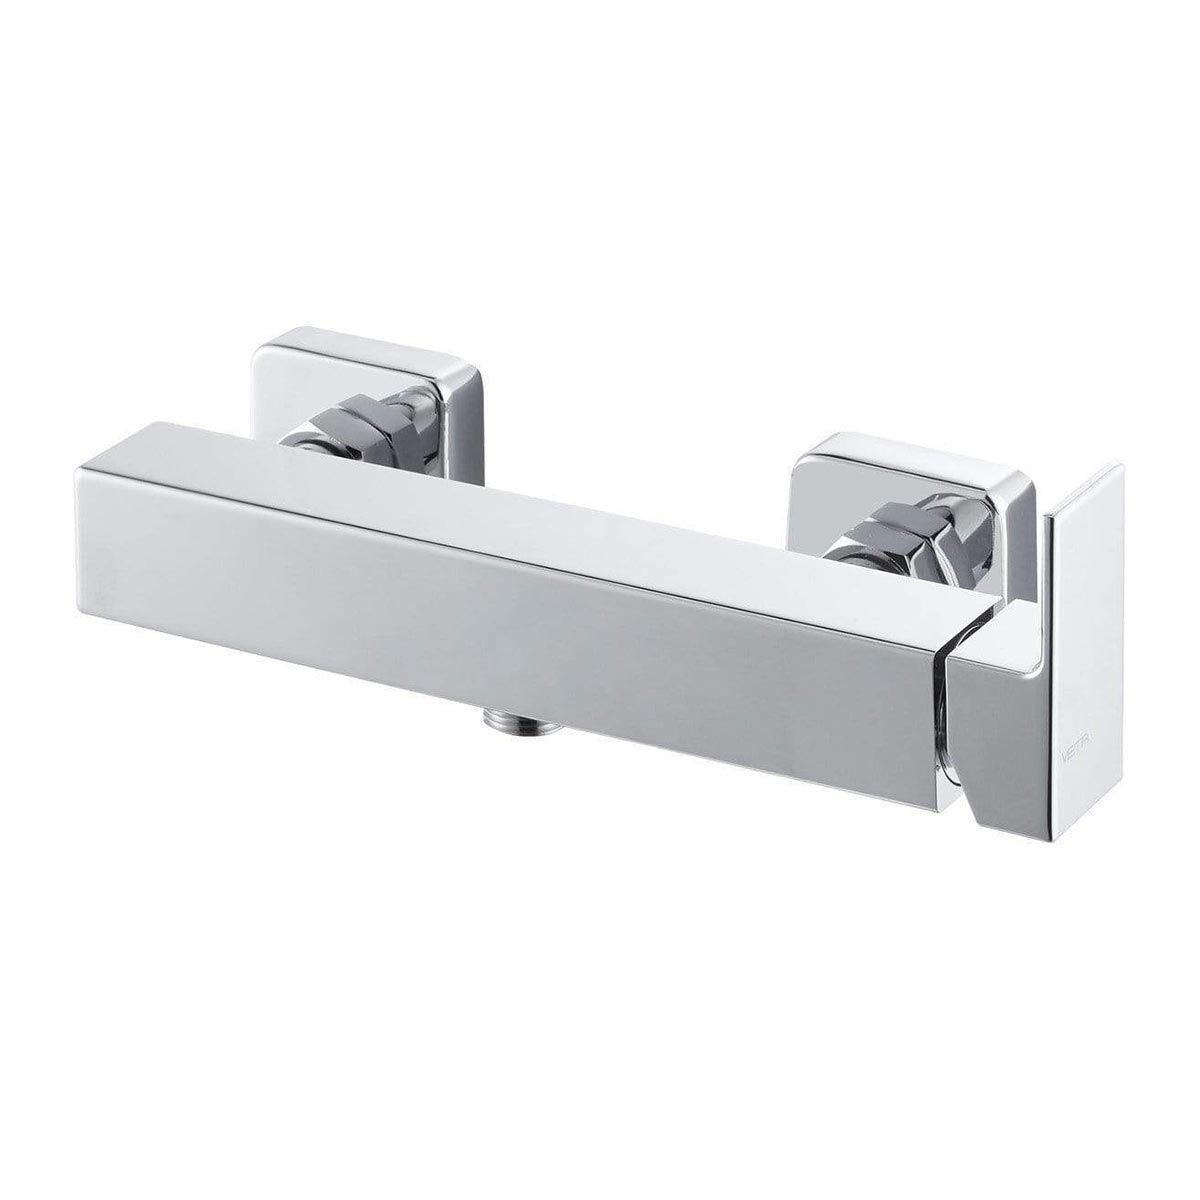 BTL Vema Lys Chrome Single Outlet Wall Mounted Shower Mixer